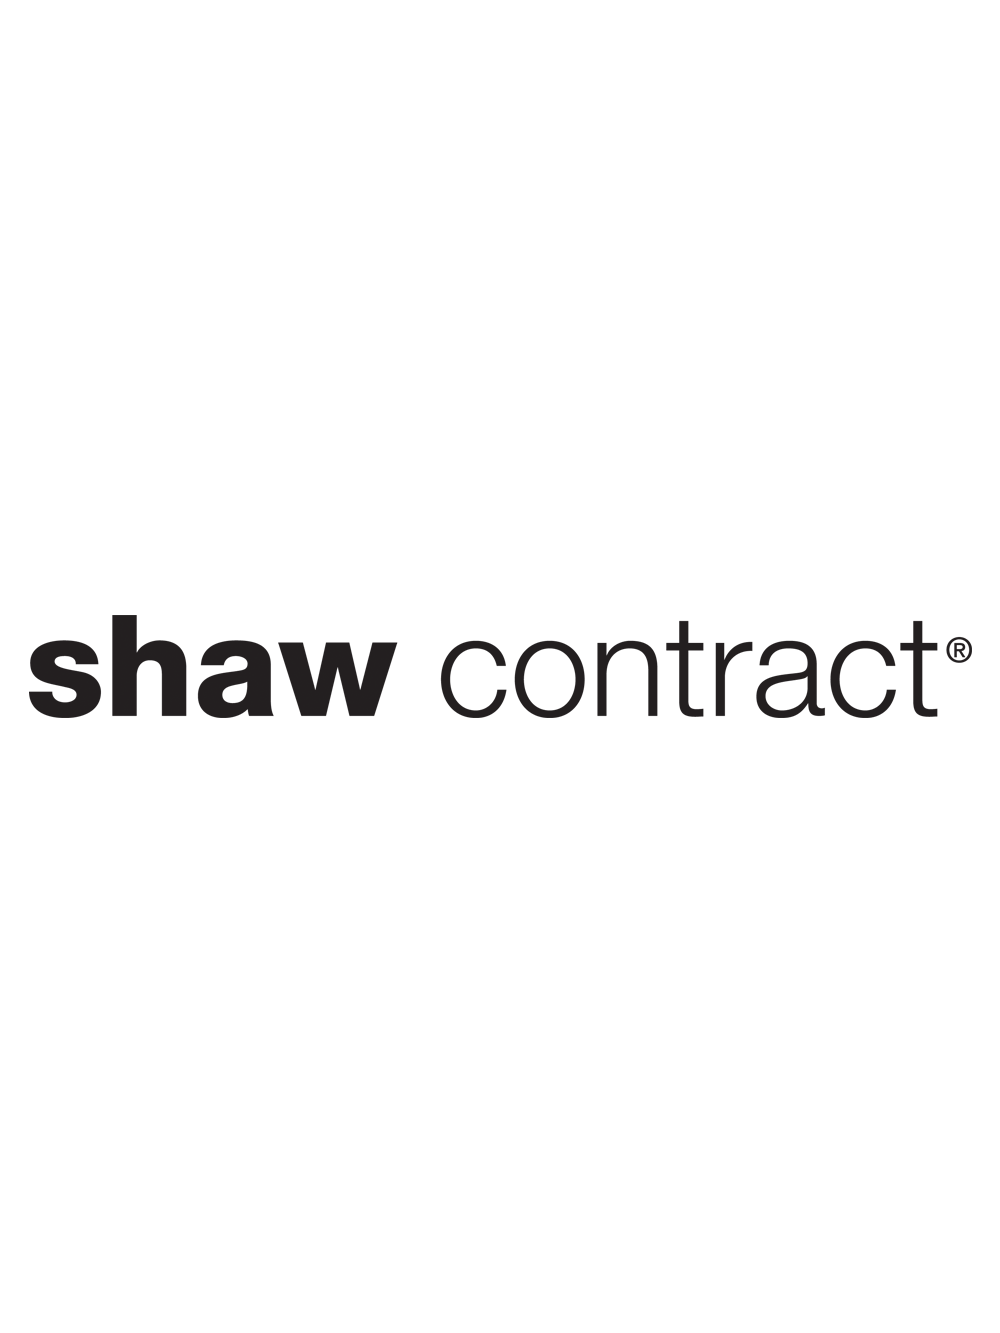 shaw-contract_1000x1333.png